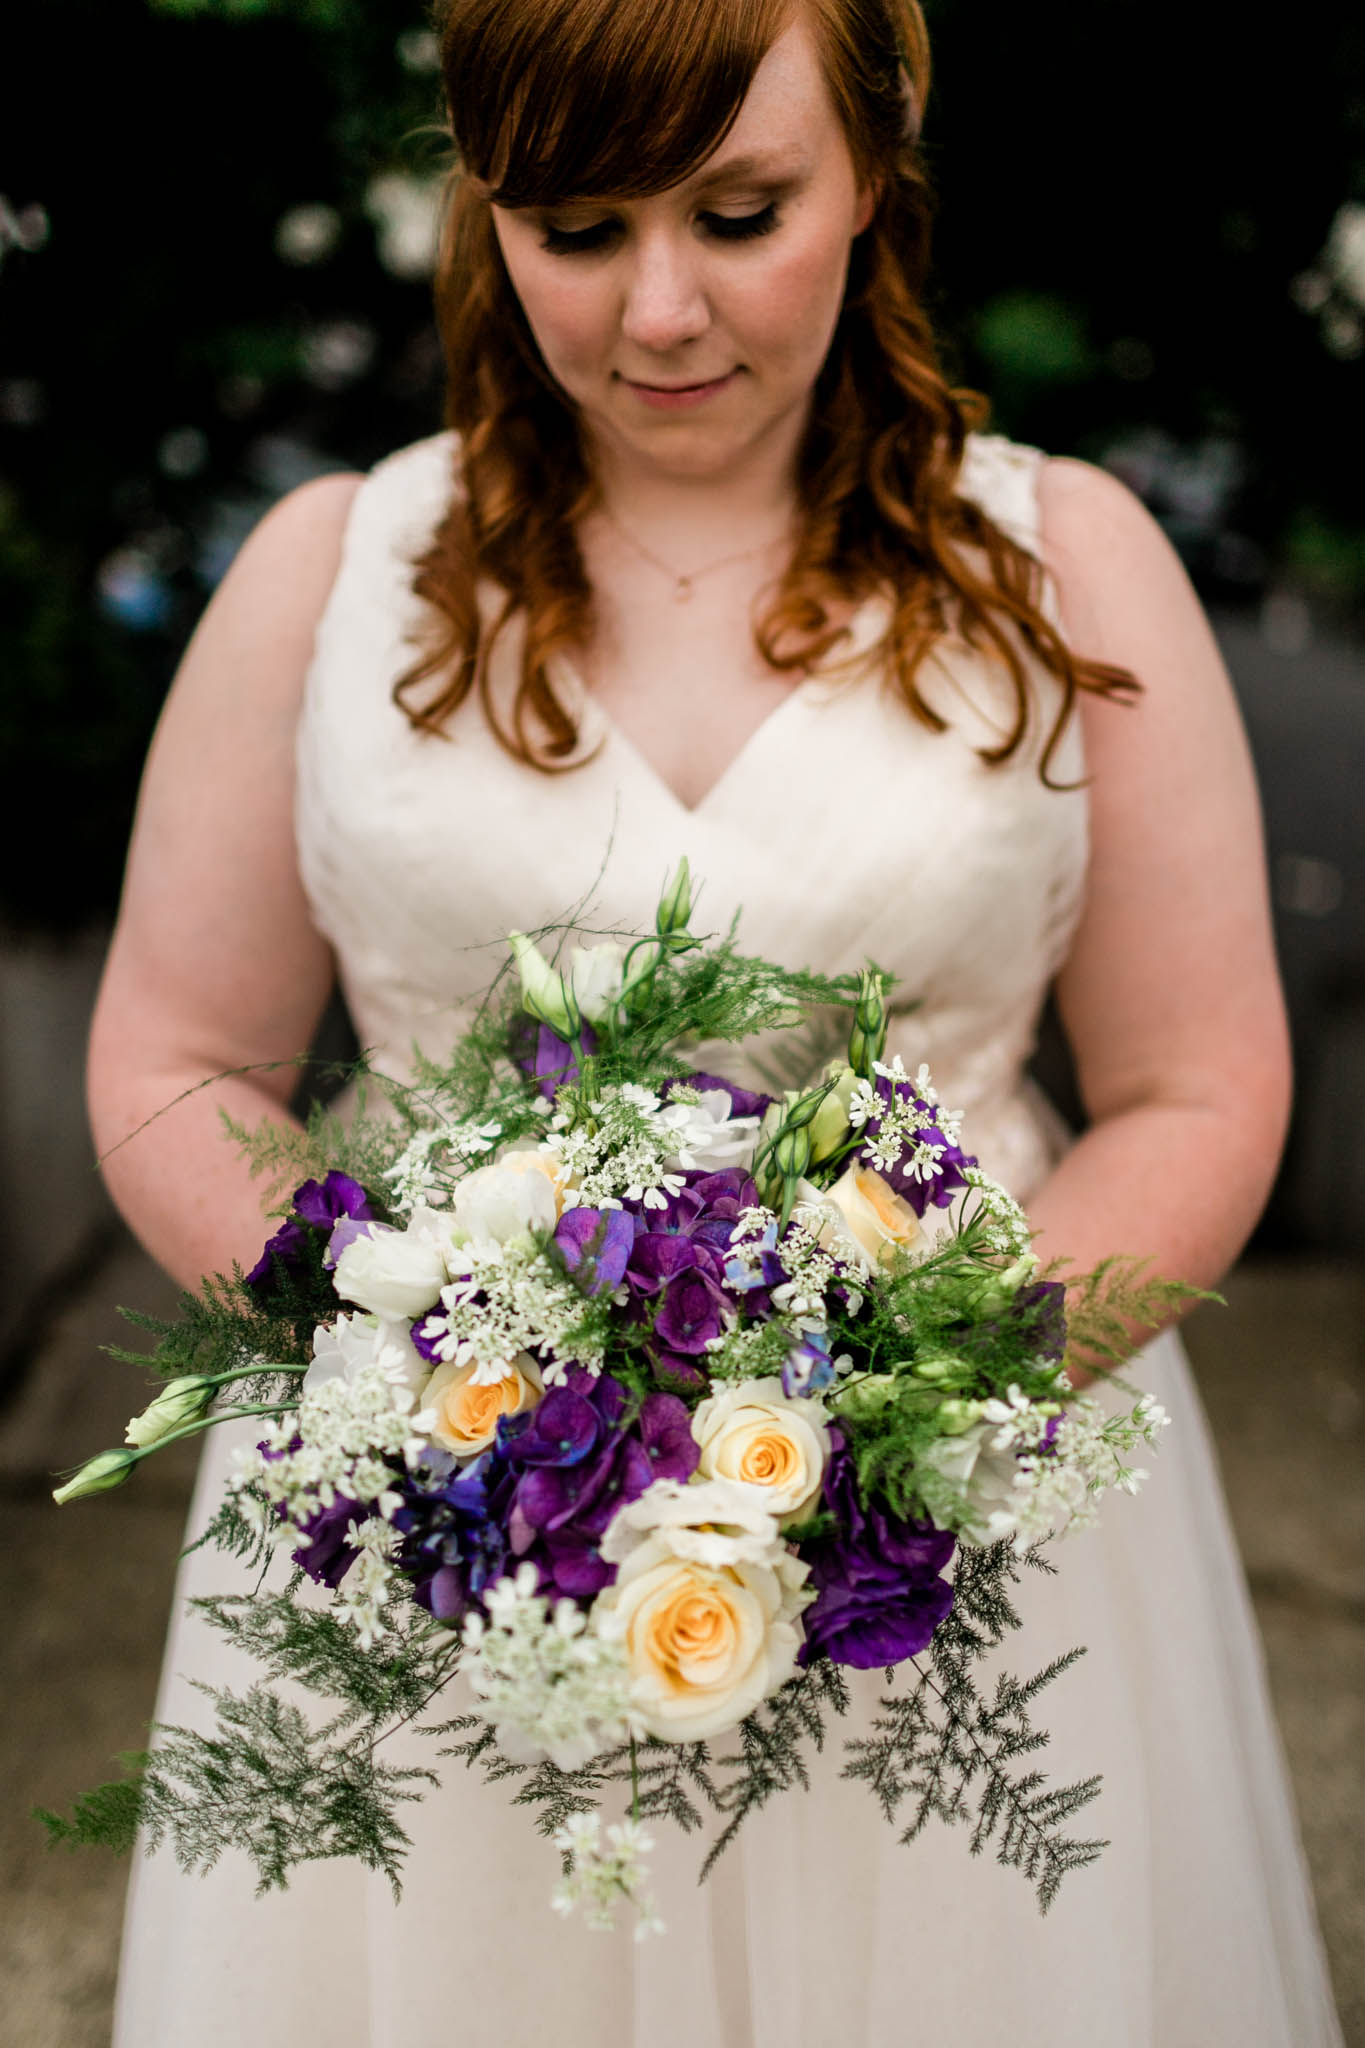 Haw River Ballroom Wedding   By G. Lin Photography   Durham Wedding Photographer   Bride with bouquet